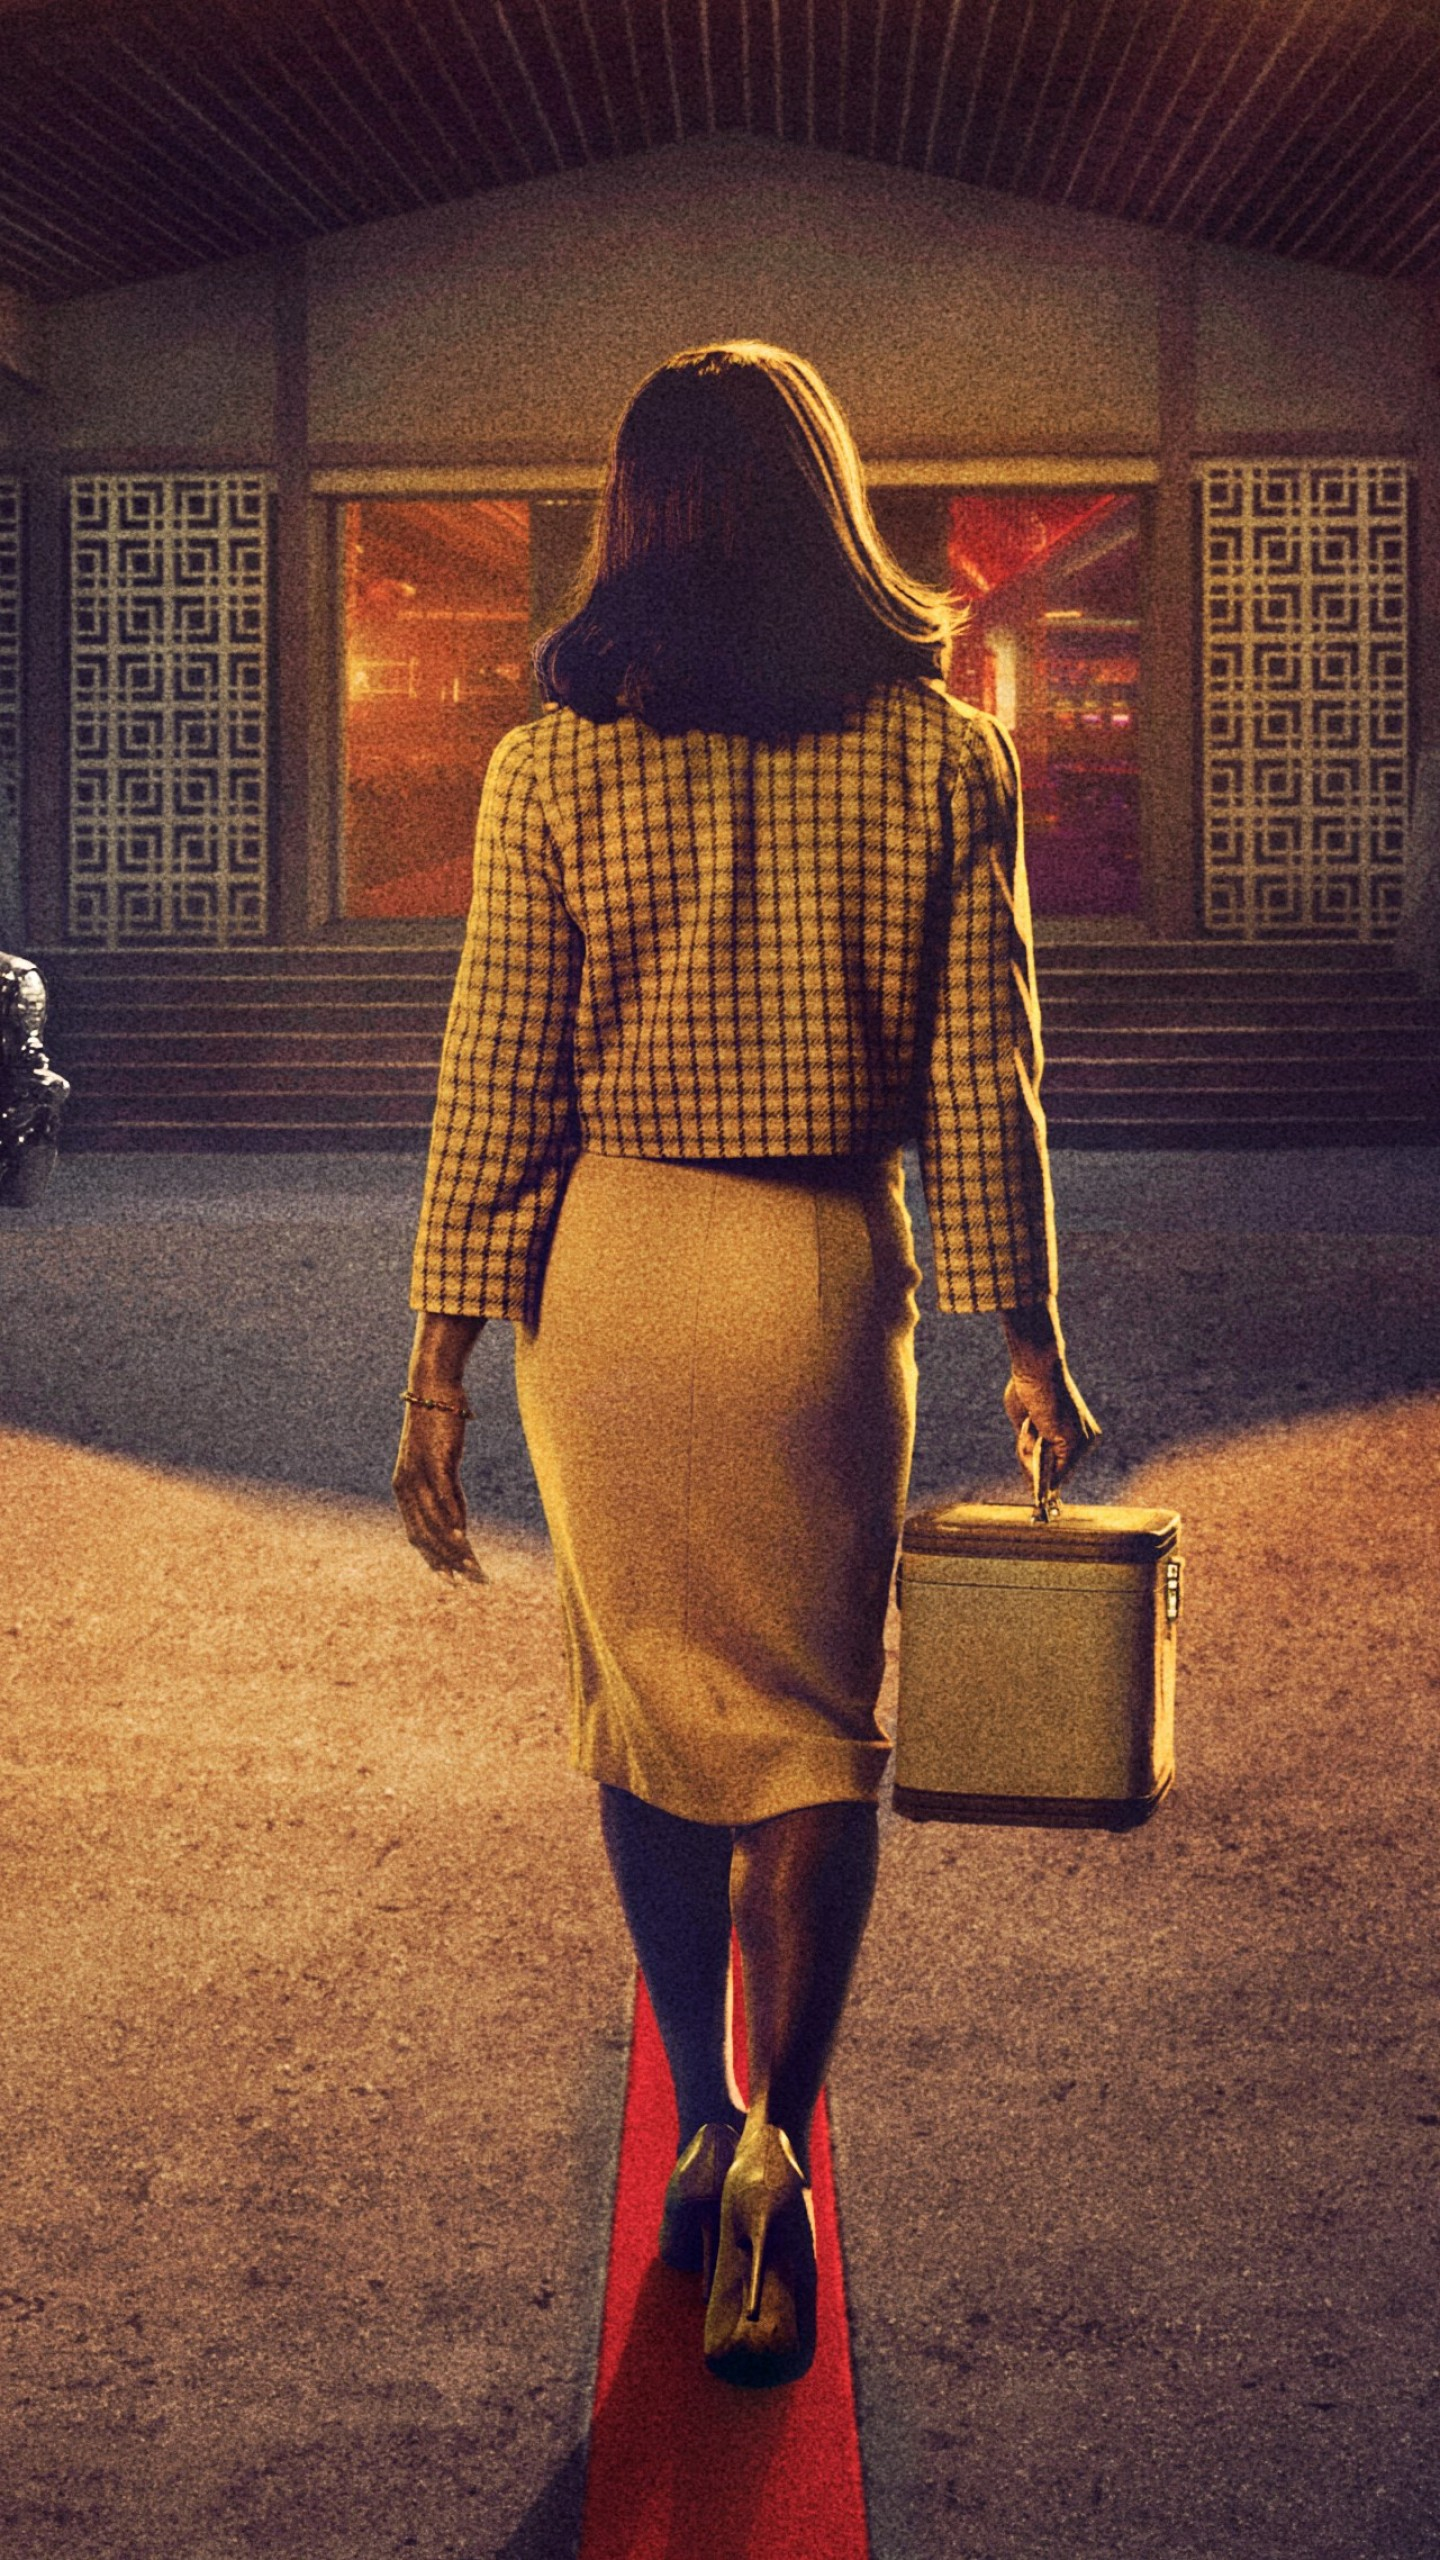 720x1280 Hd Wallpapers Quotes Wallpaper Bad Times At The El Royale Poster 4k Movies